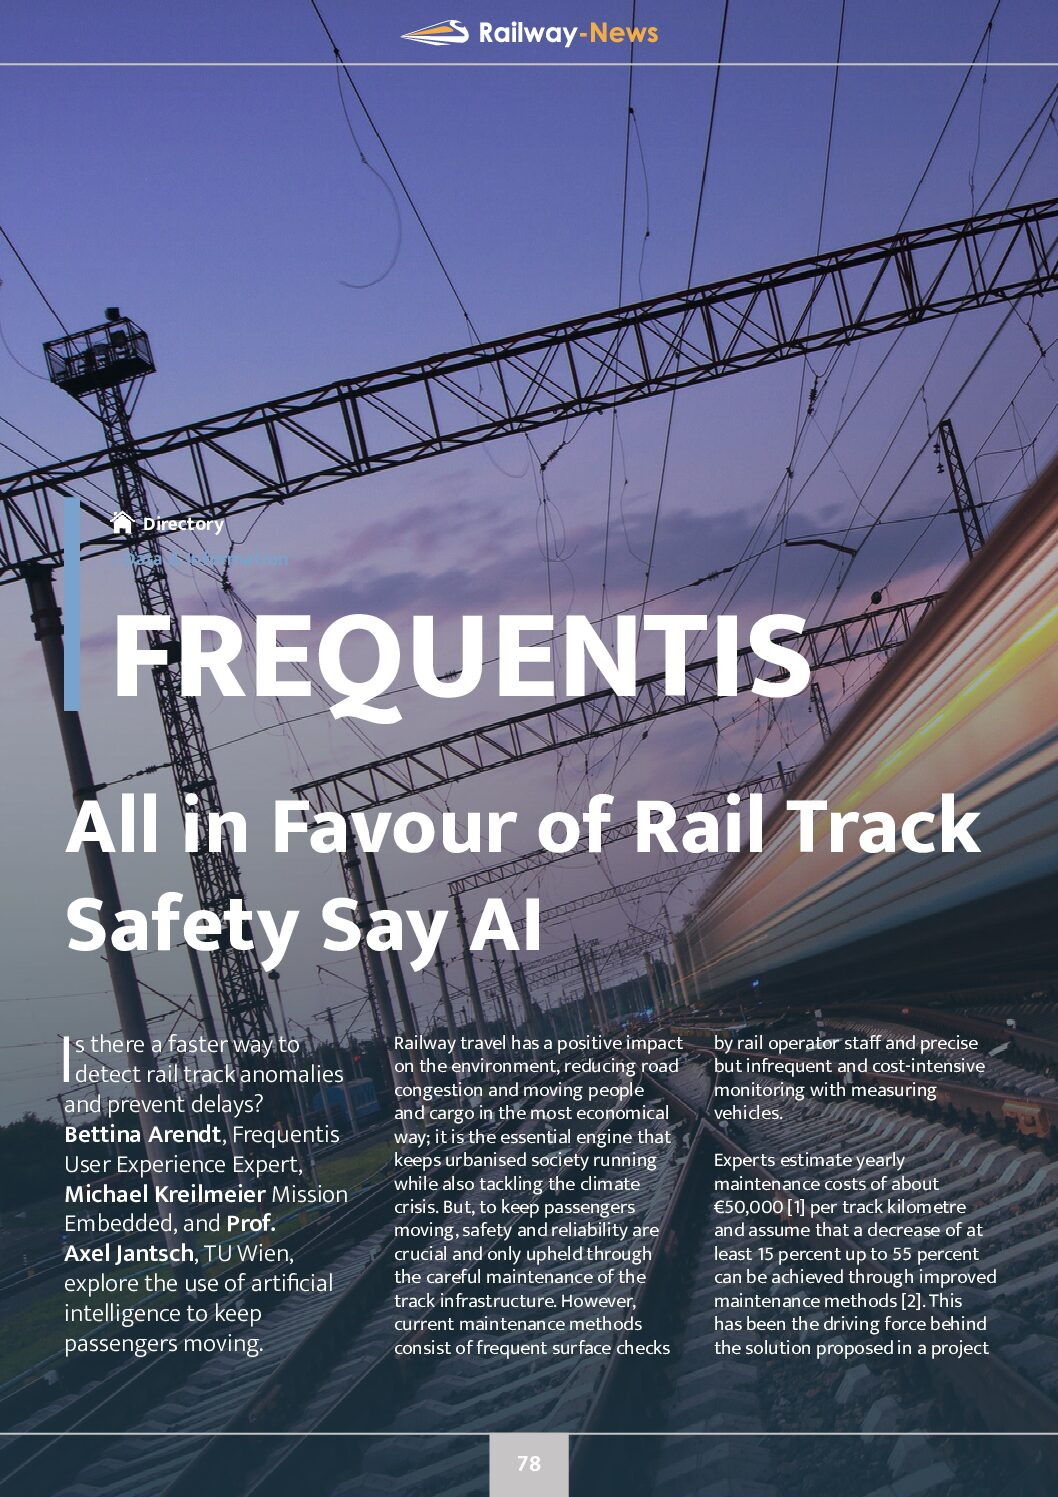 All in Favour of Rail Track Safety Say AI